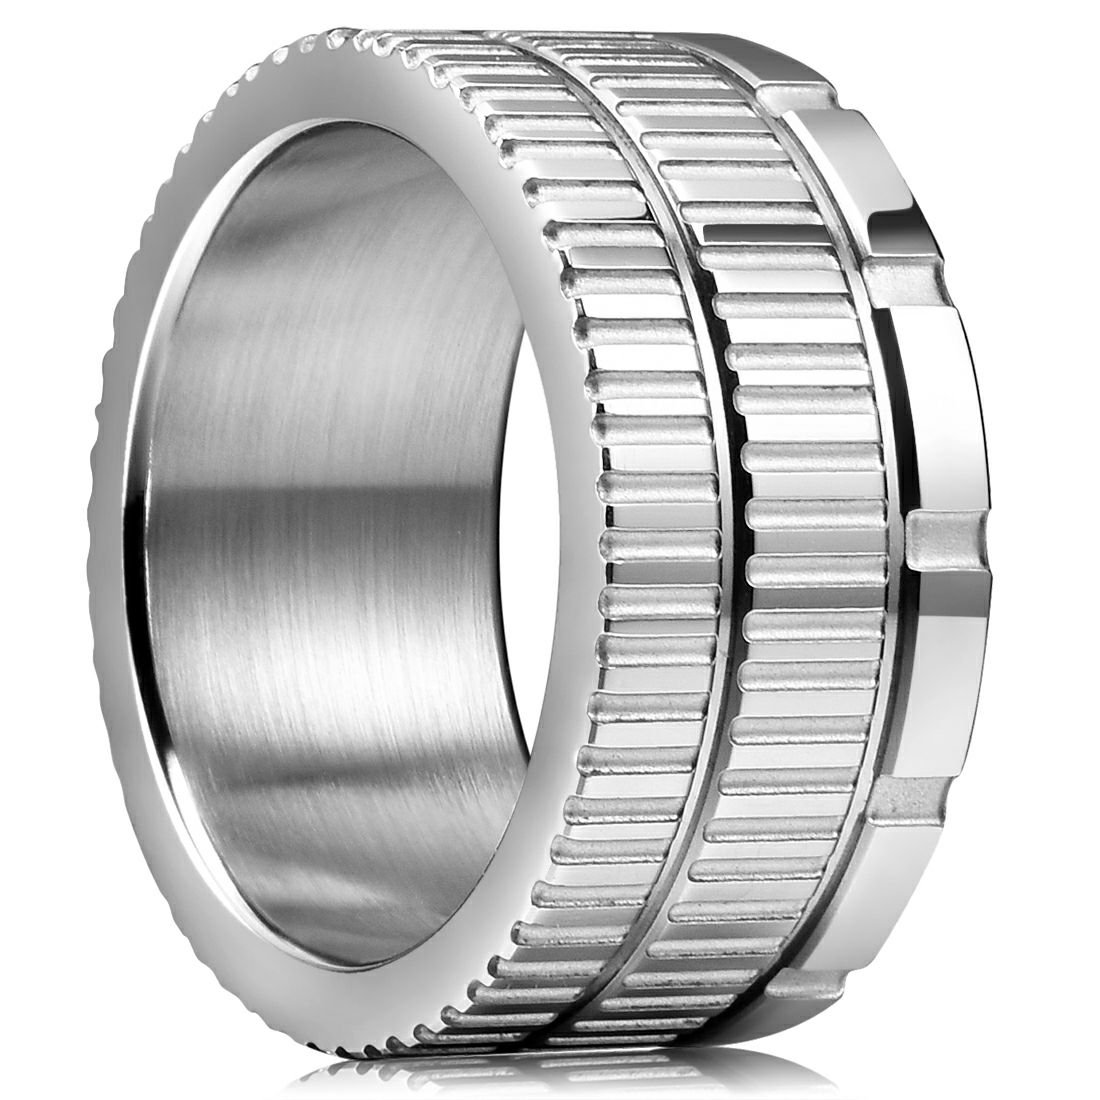 King Will 10.6mm 316 Stainless Steel Wedding Band Ring with Sawtooth Pattern Curved in Base&Inner Surface Matte(10)